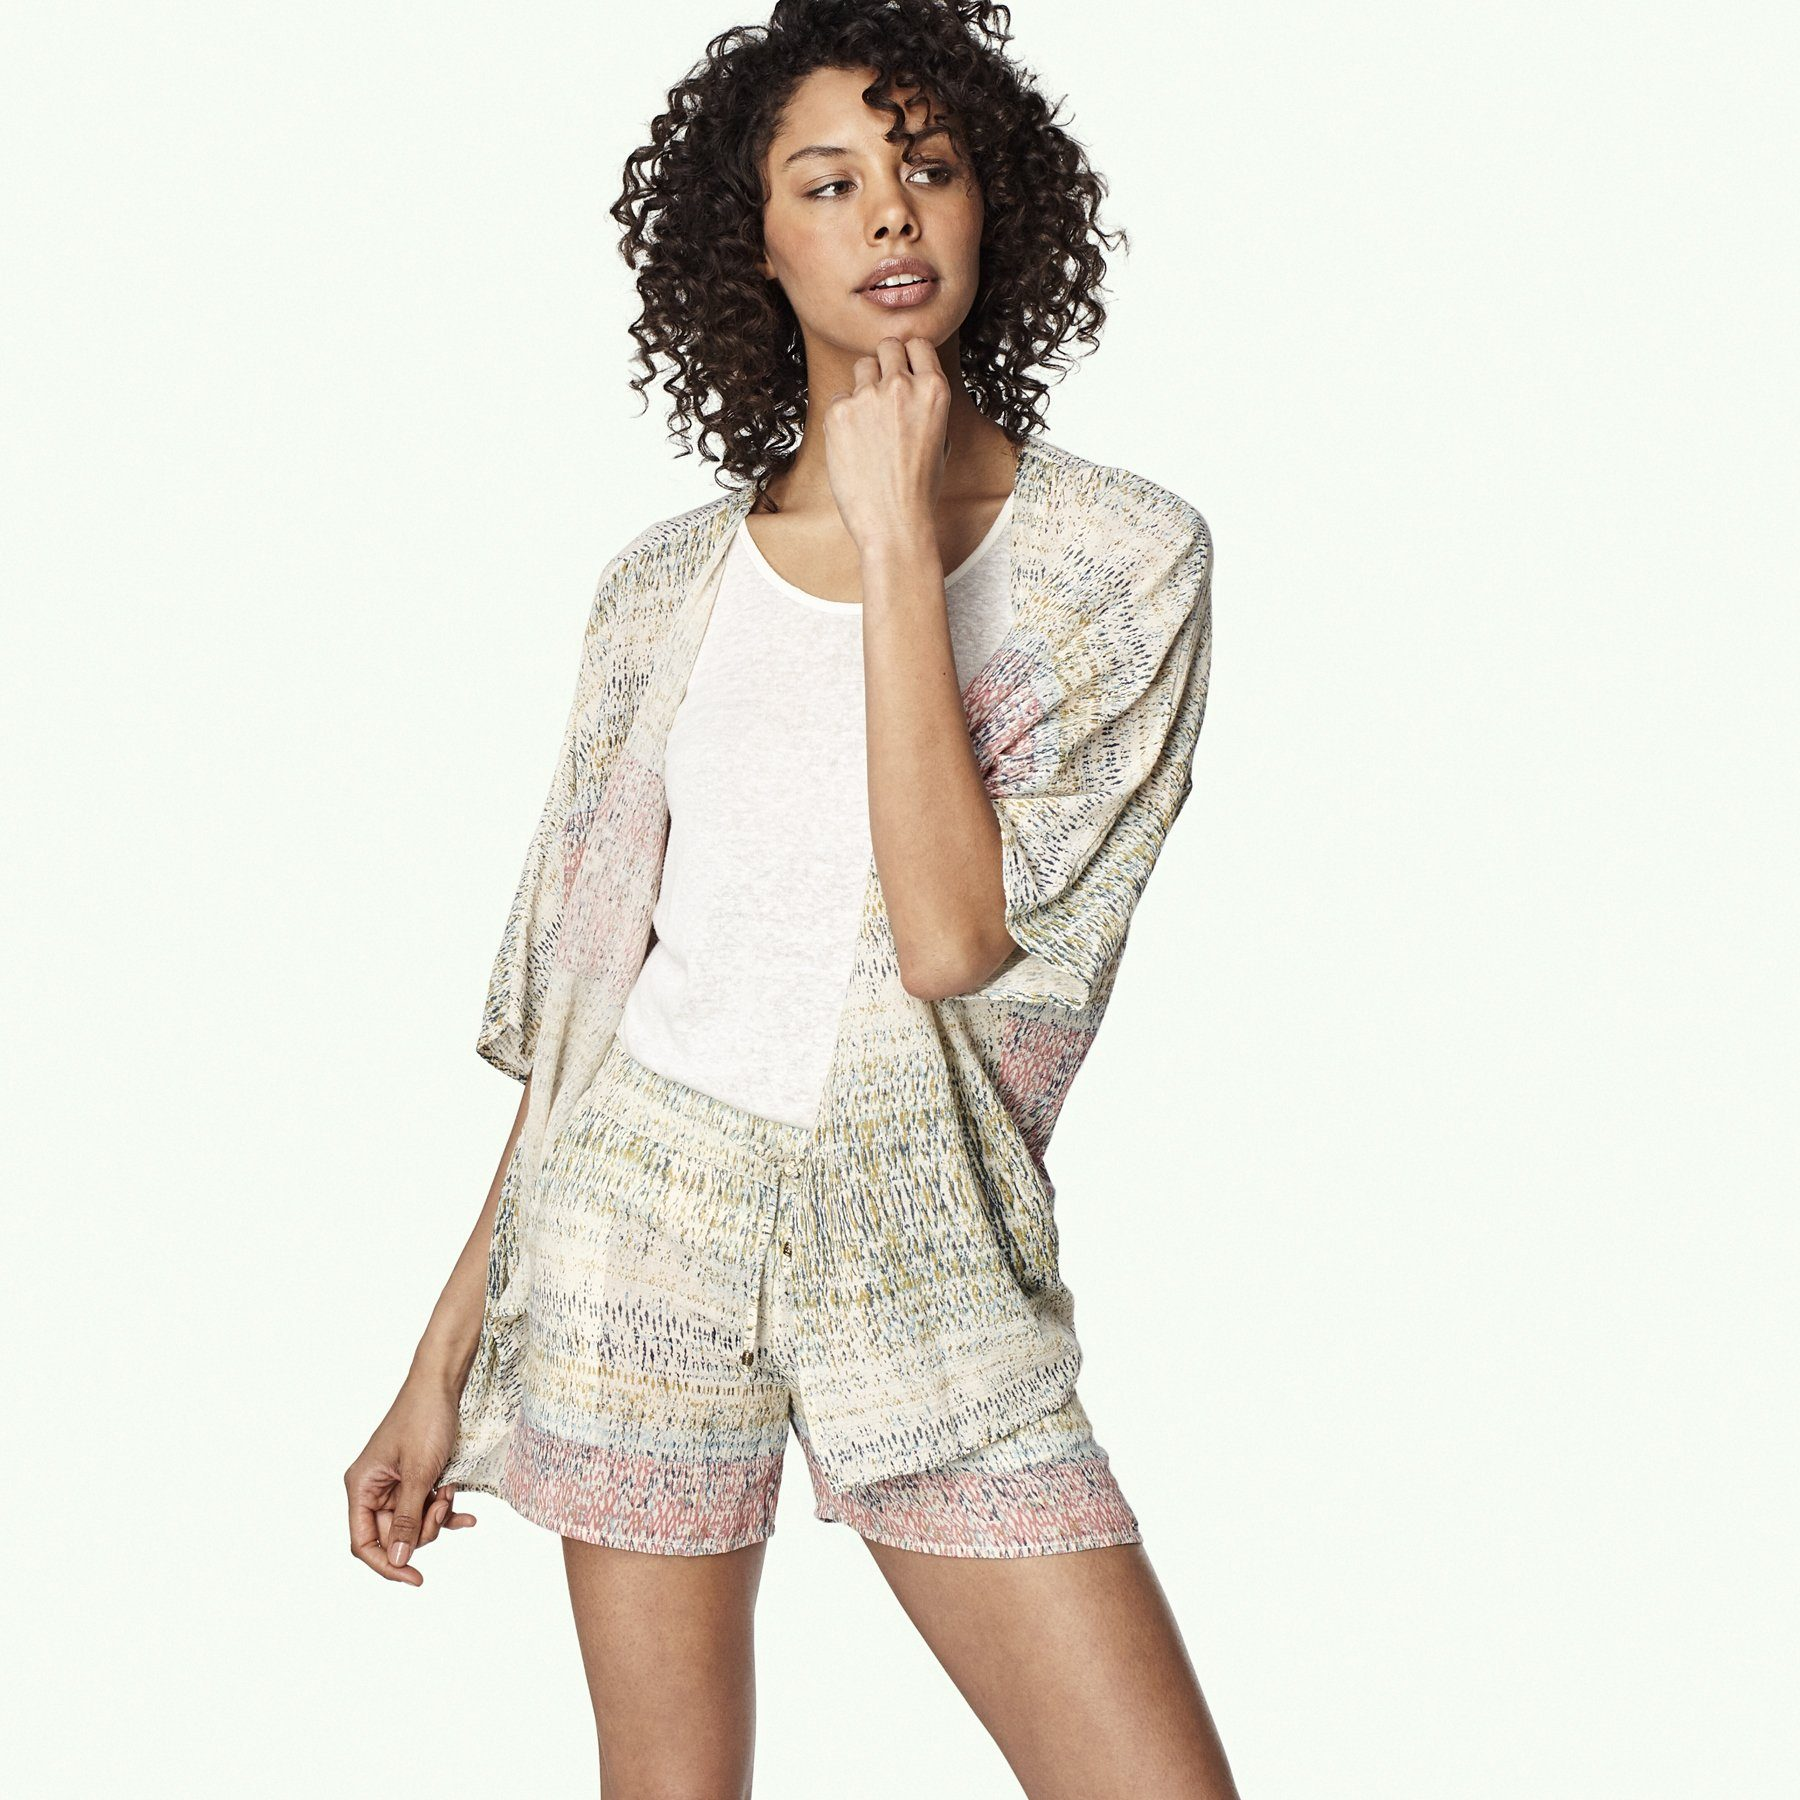 O'Neill Beach Cover up »Woven beach cover up«